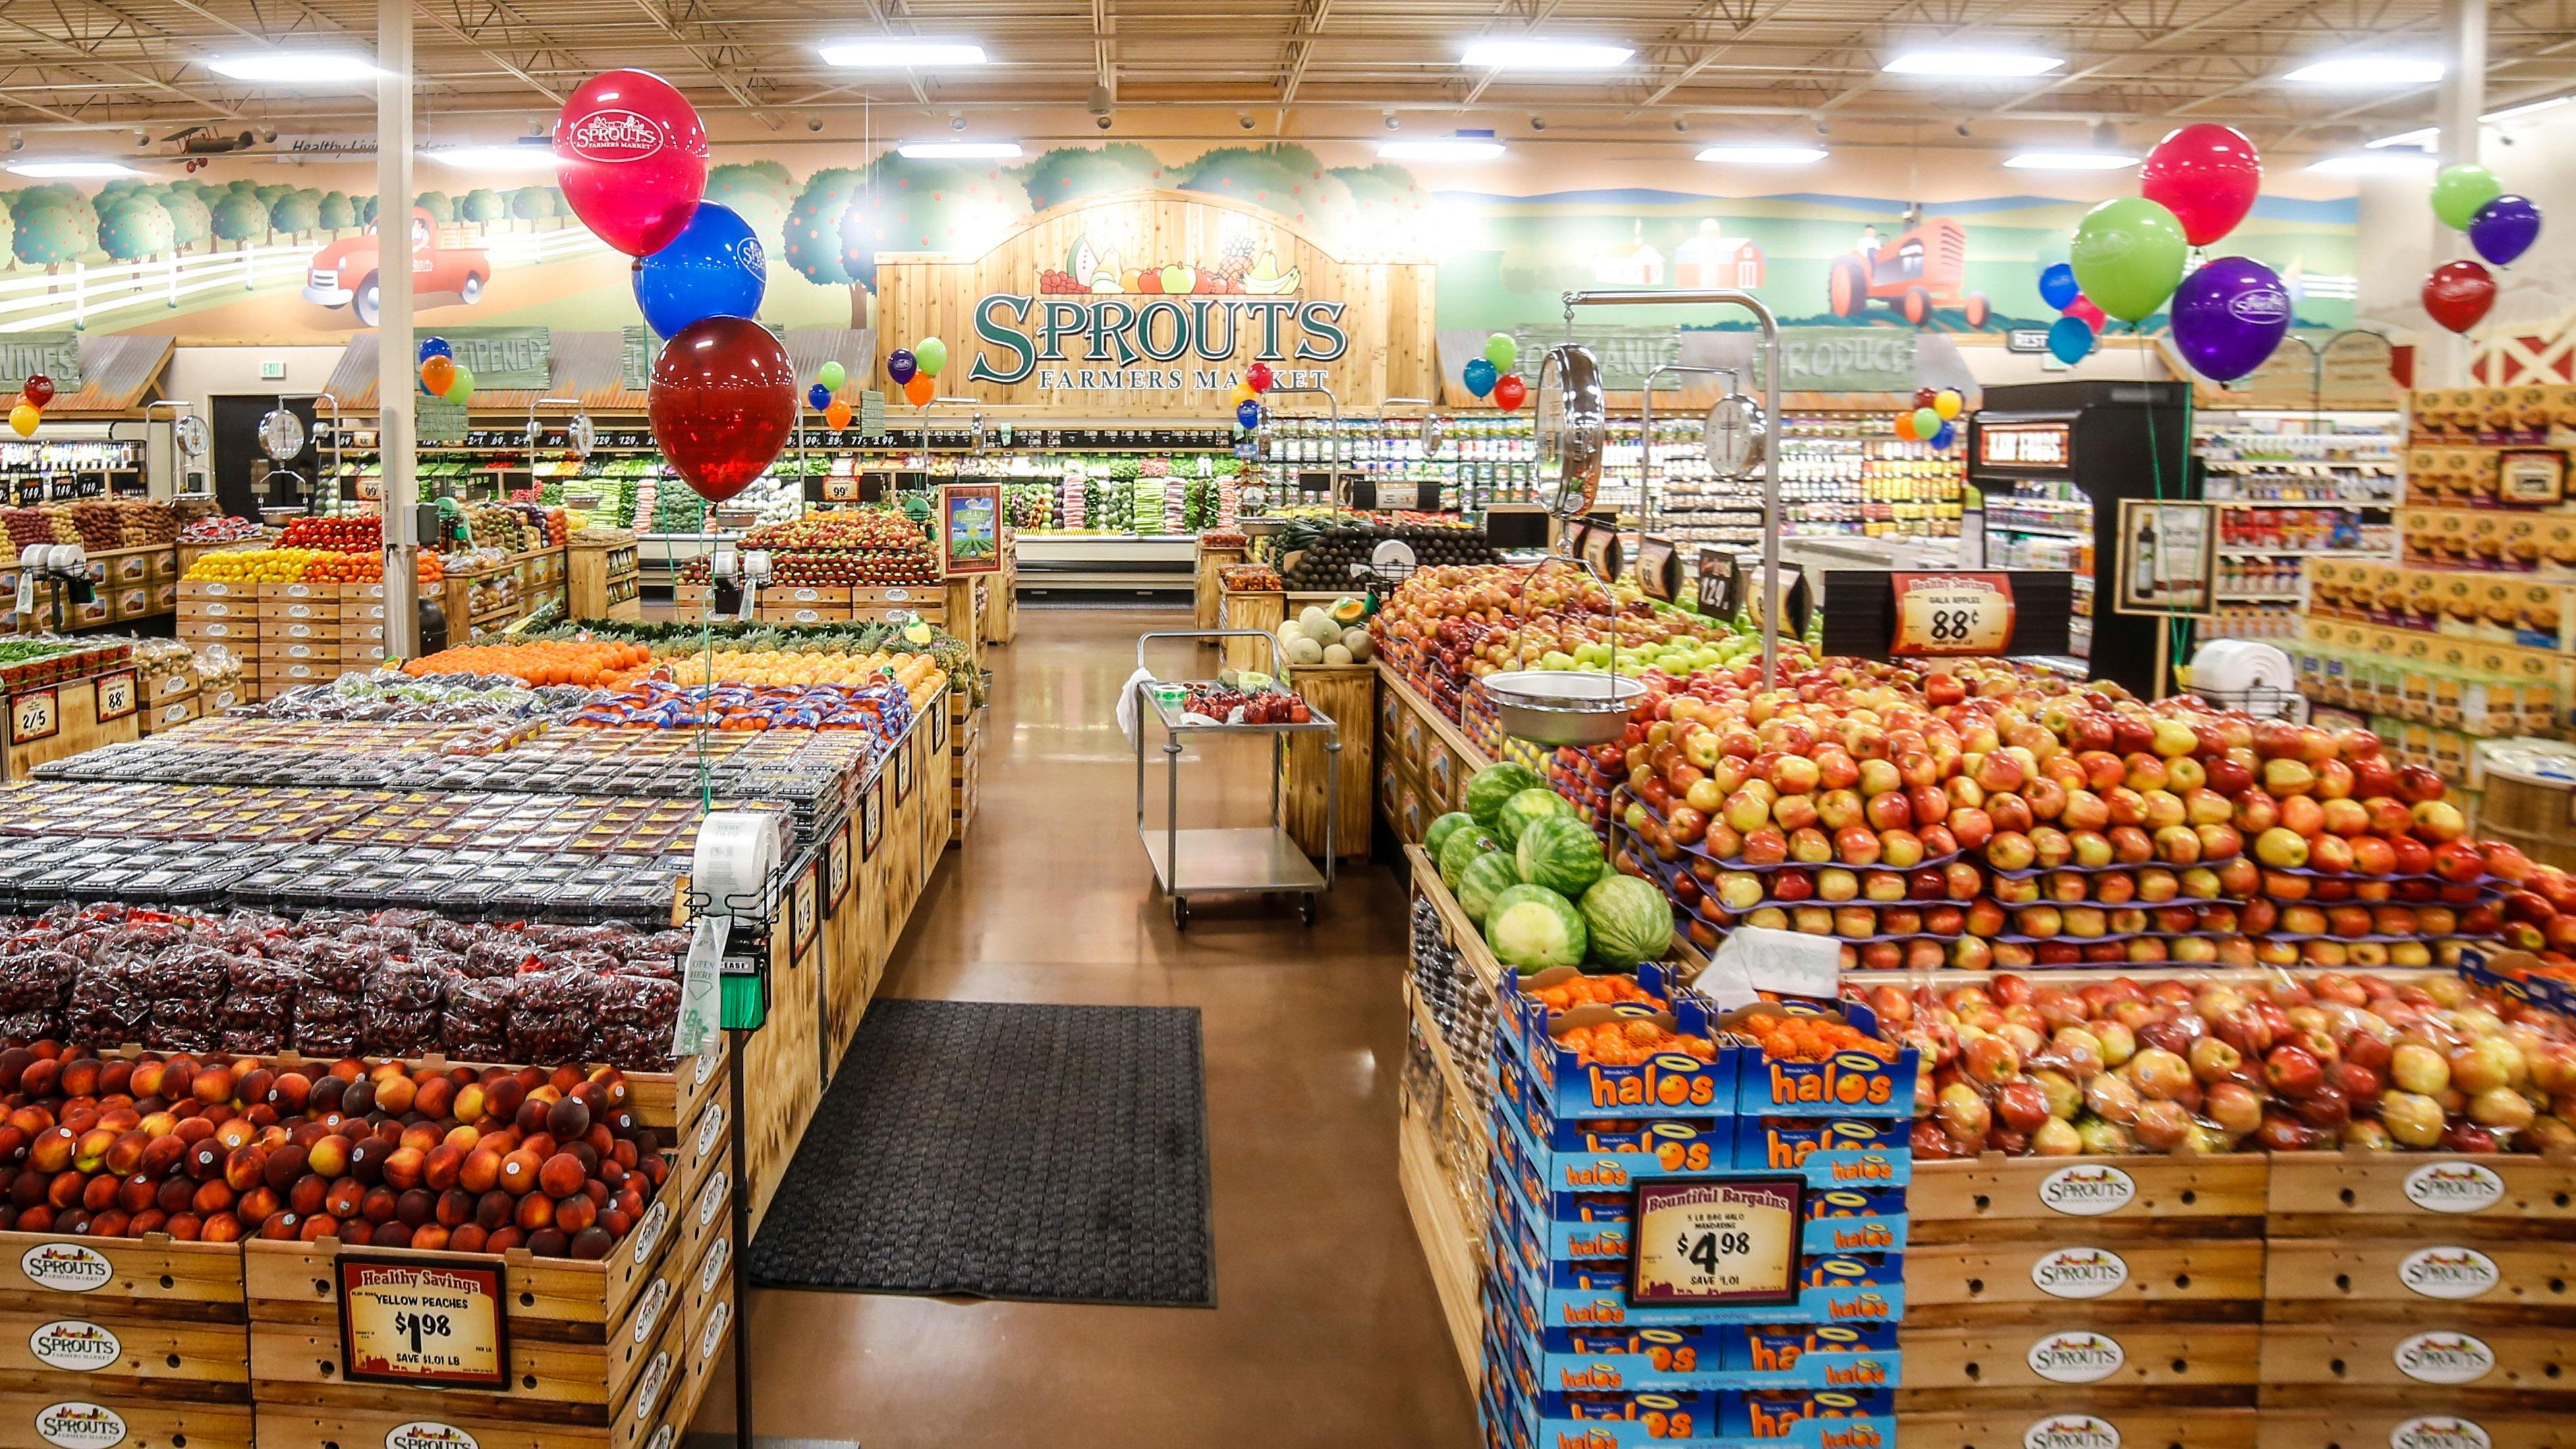 Sprouts Farmers Market image 3